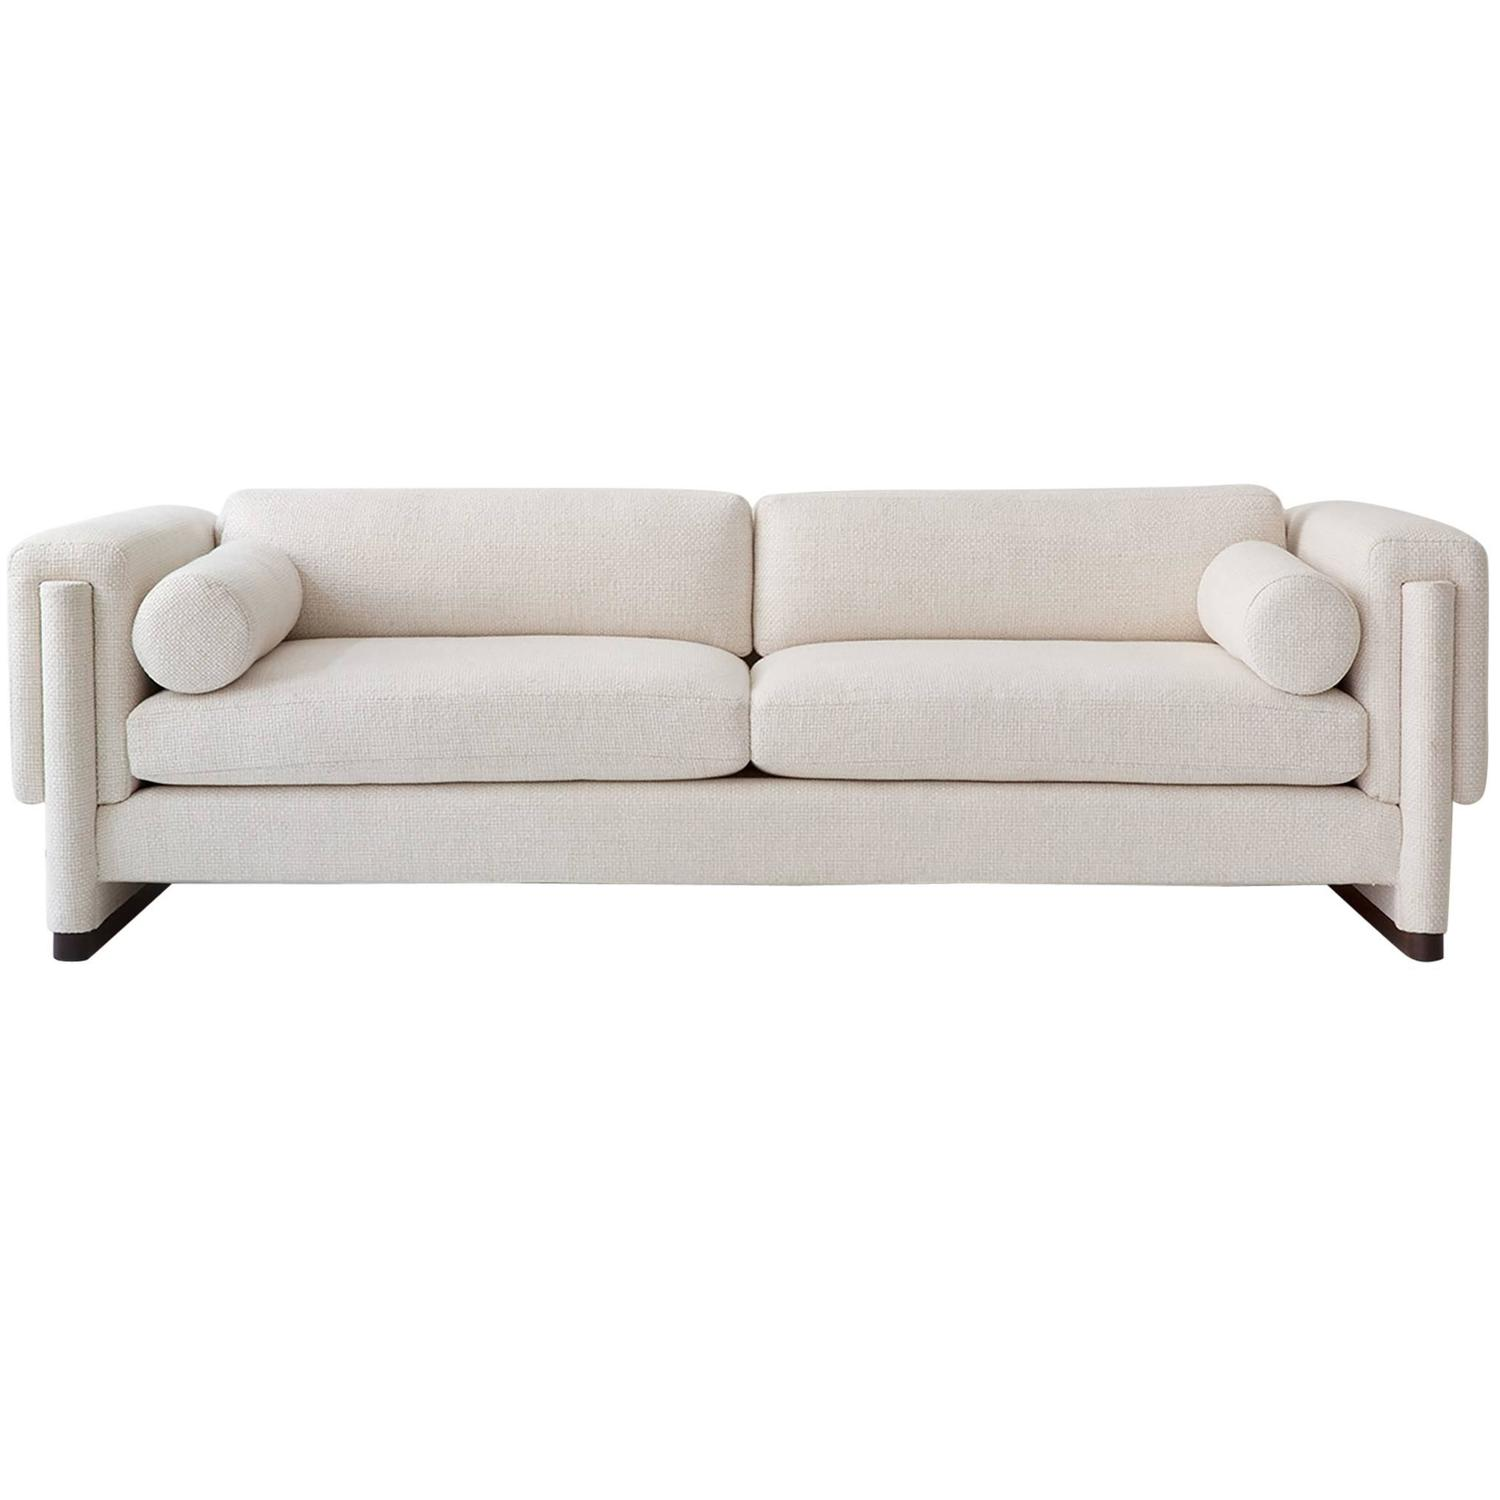 Howard Sofa, Upholstered Down And Solid Wood